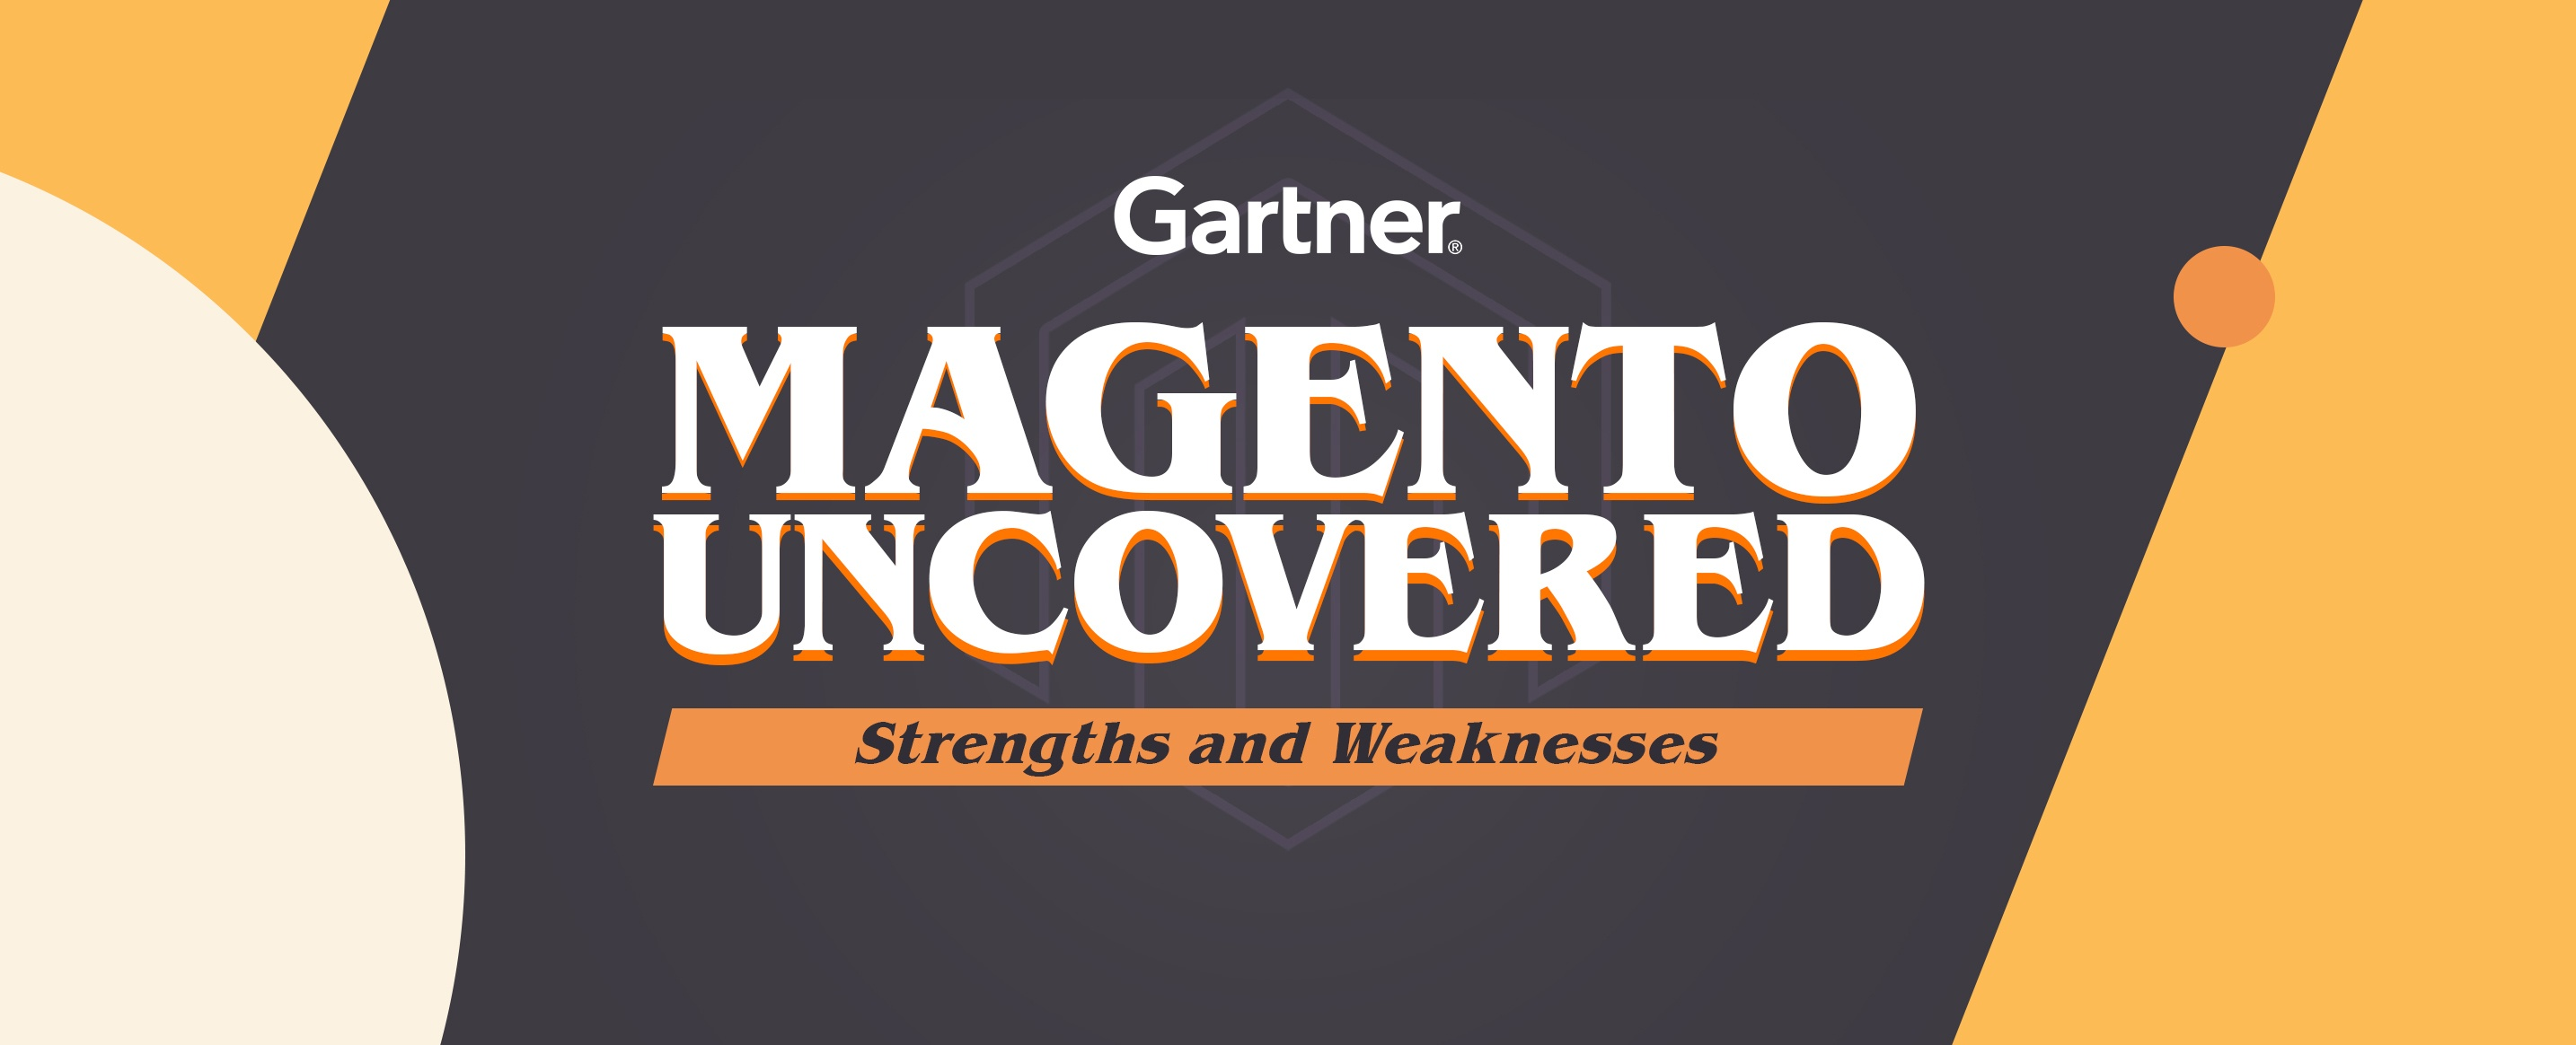 Magento-Uncovered--Strengths-and-Weaknesses-Gartner-Report-2019